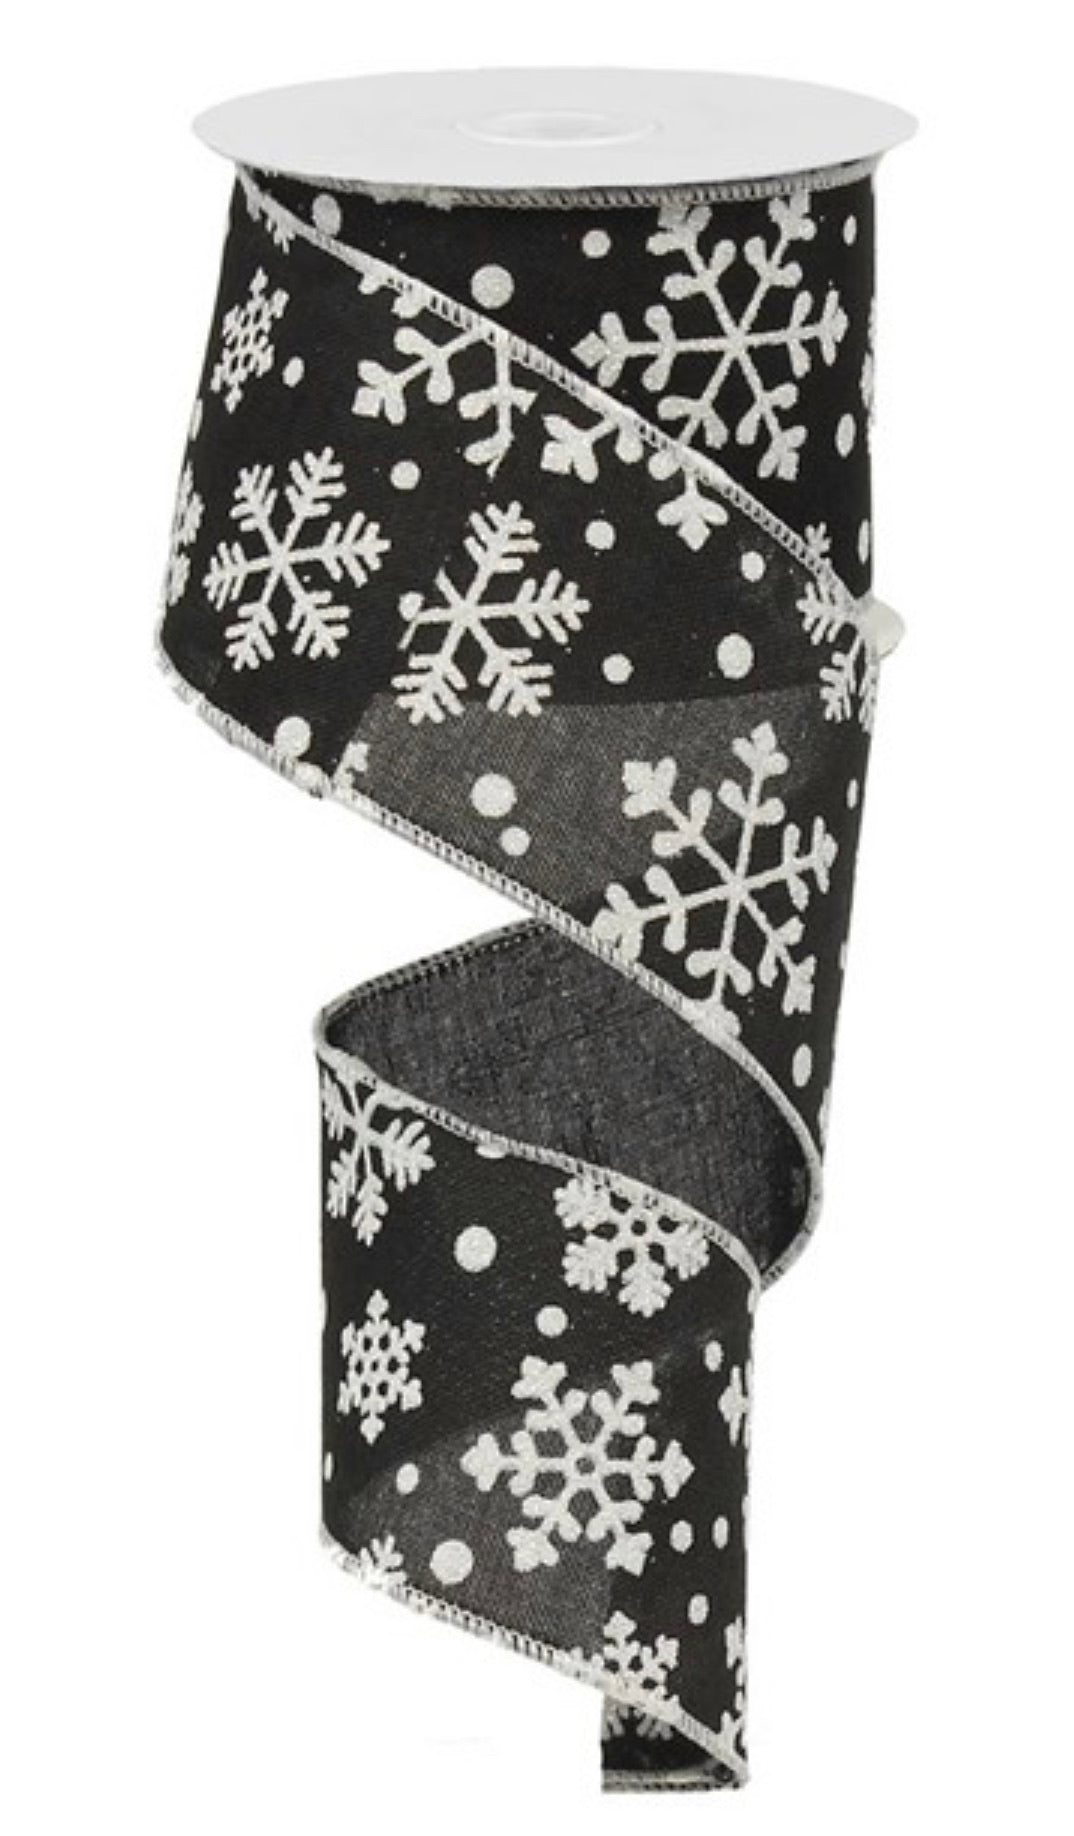 "Snowflakes ribbon 2.5"" white and black"